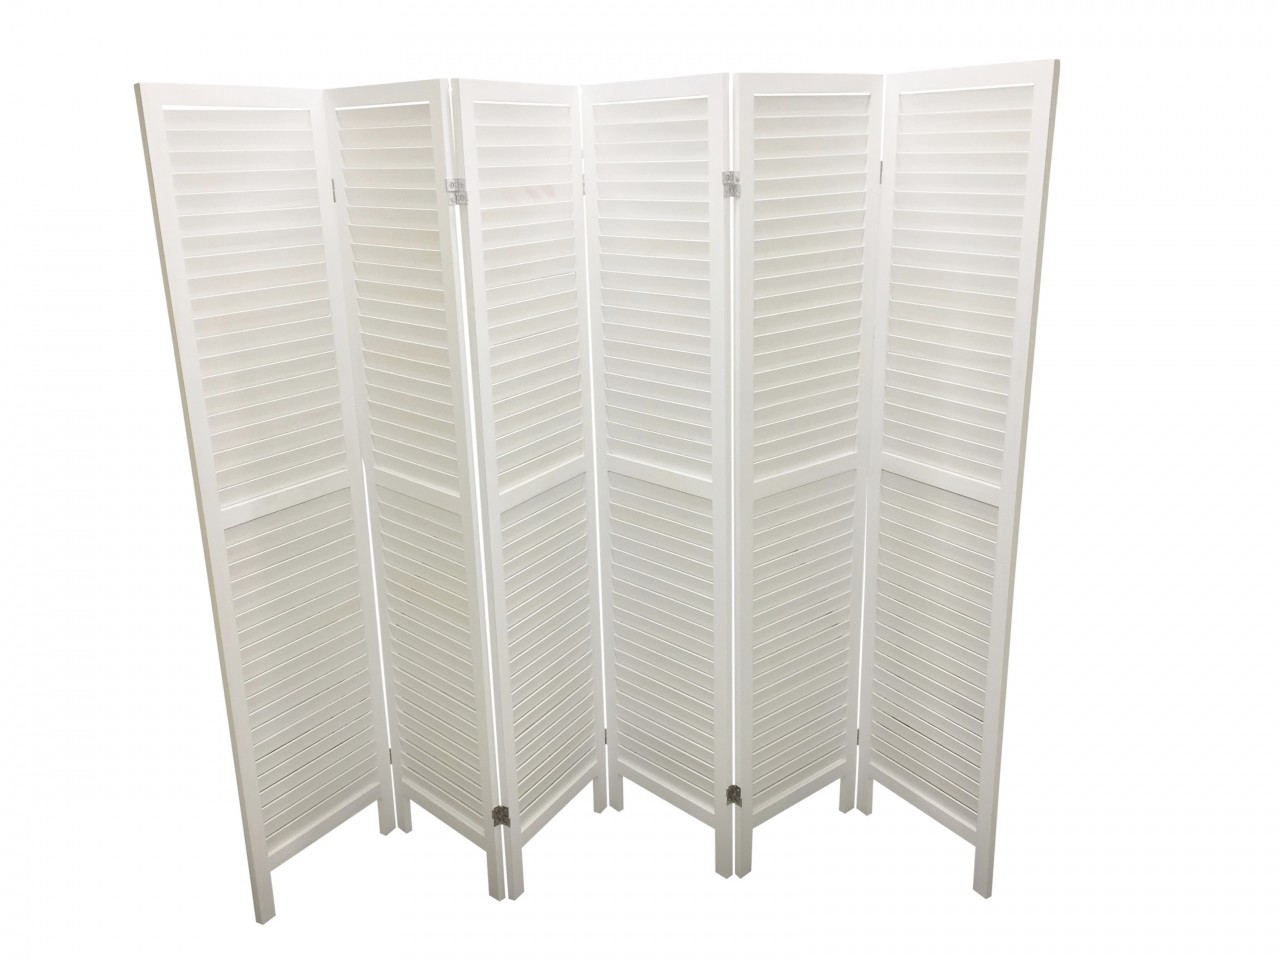 WOODEN SLAT ROOM DIVIDER WHITE 6 PANELS Eazy Goods